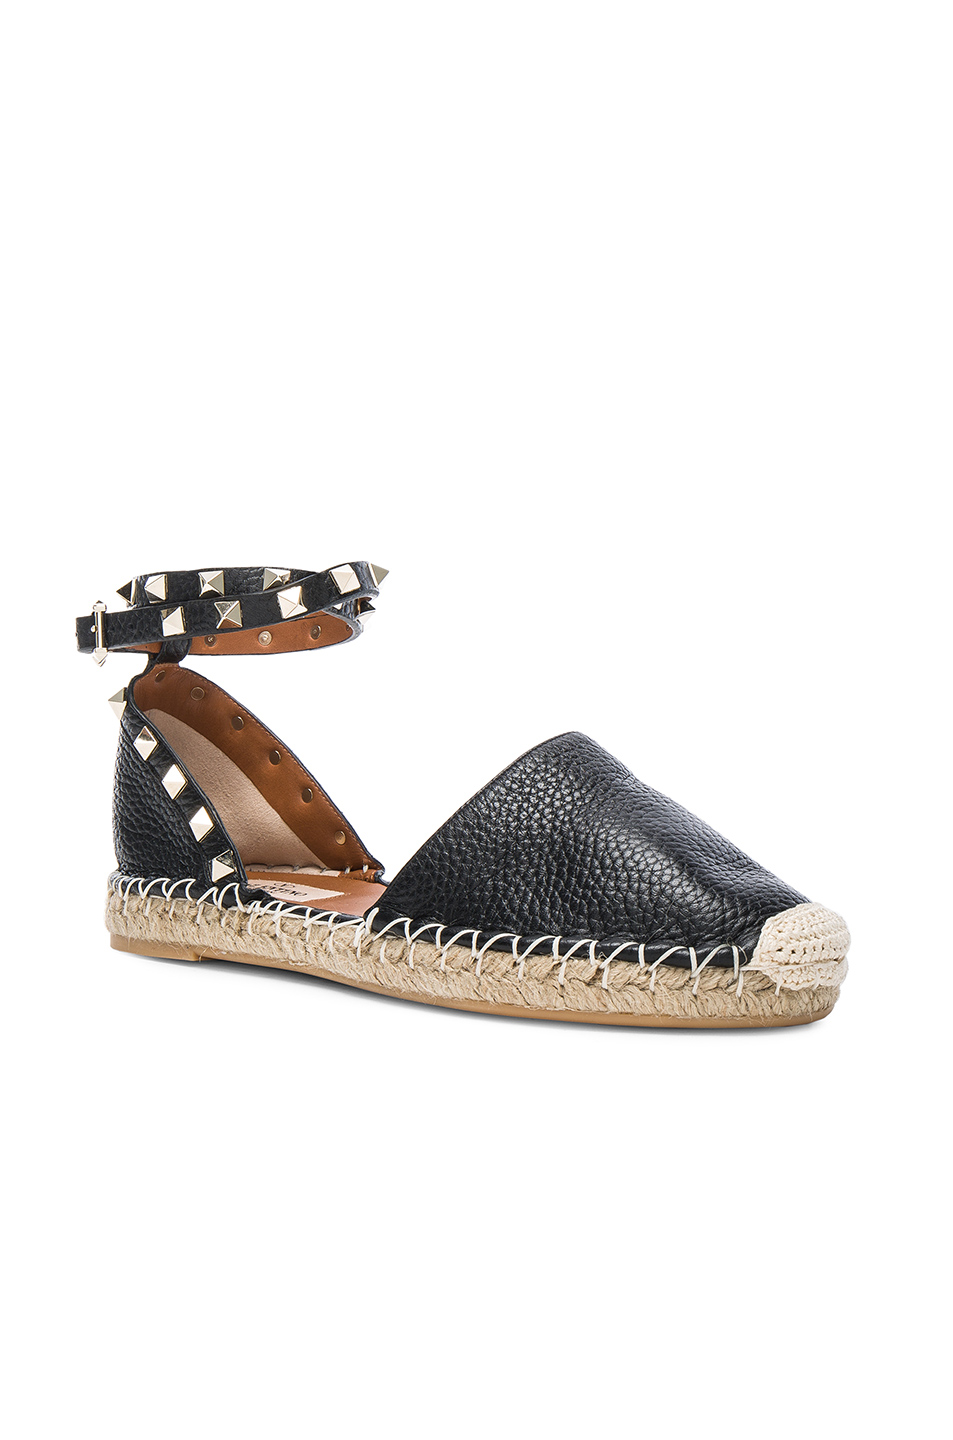 6b4bb9d75317 Buy Original Valentino Rockstud Double Flat Leather Espadrilles at ...